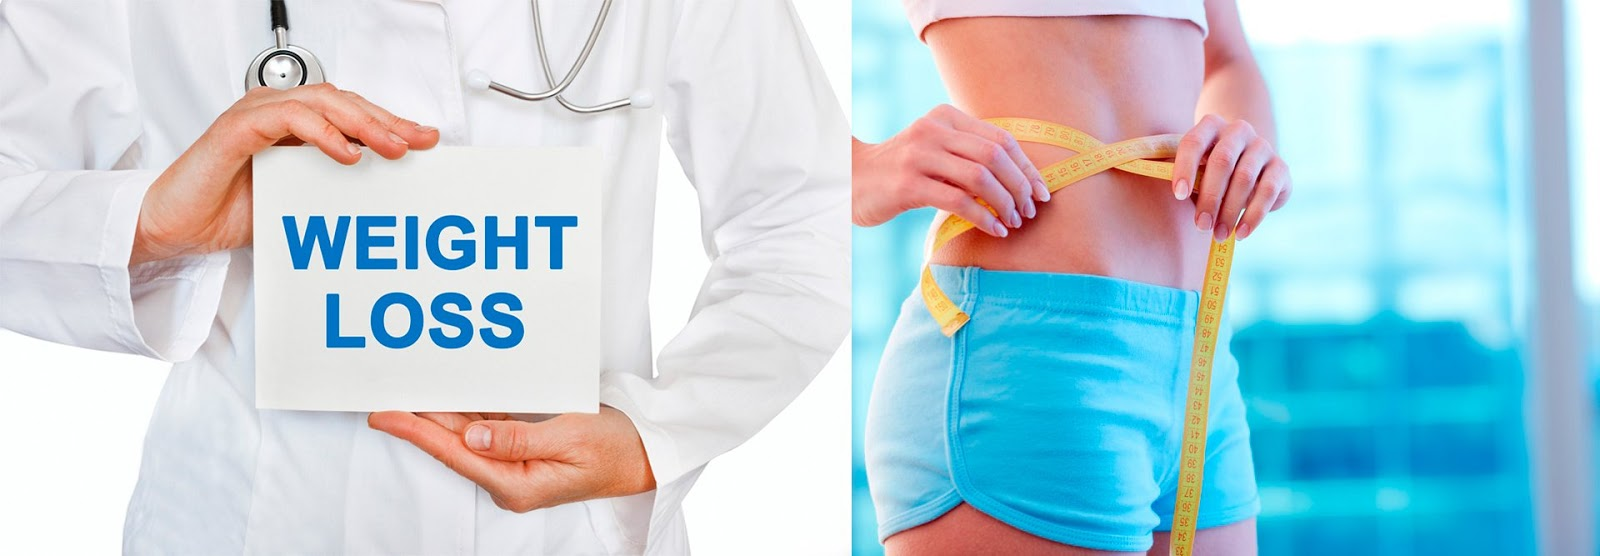 Things You Should Know Before Trying About the Weight Loss Surgery